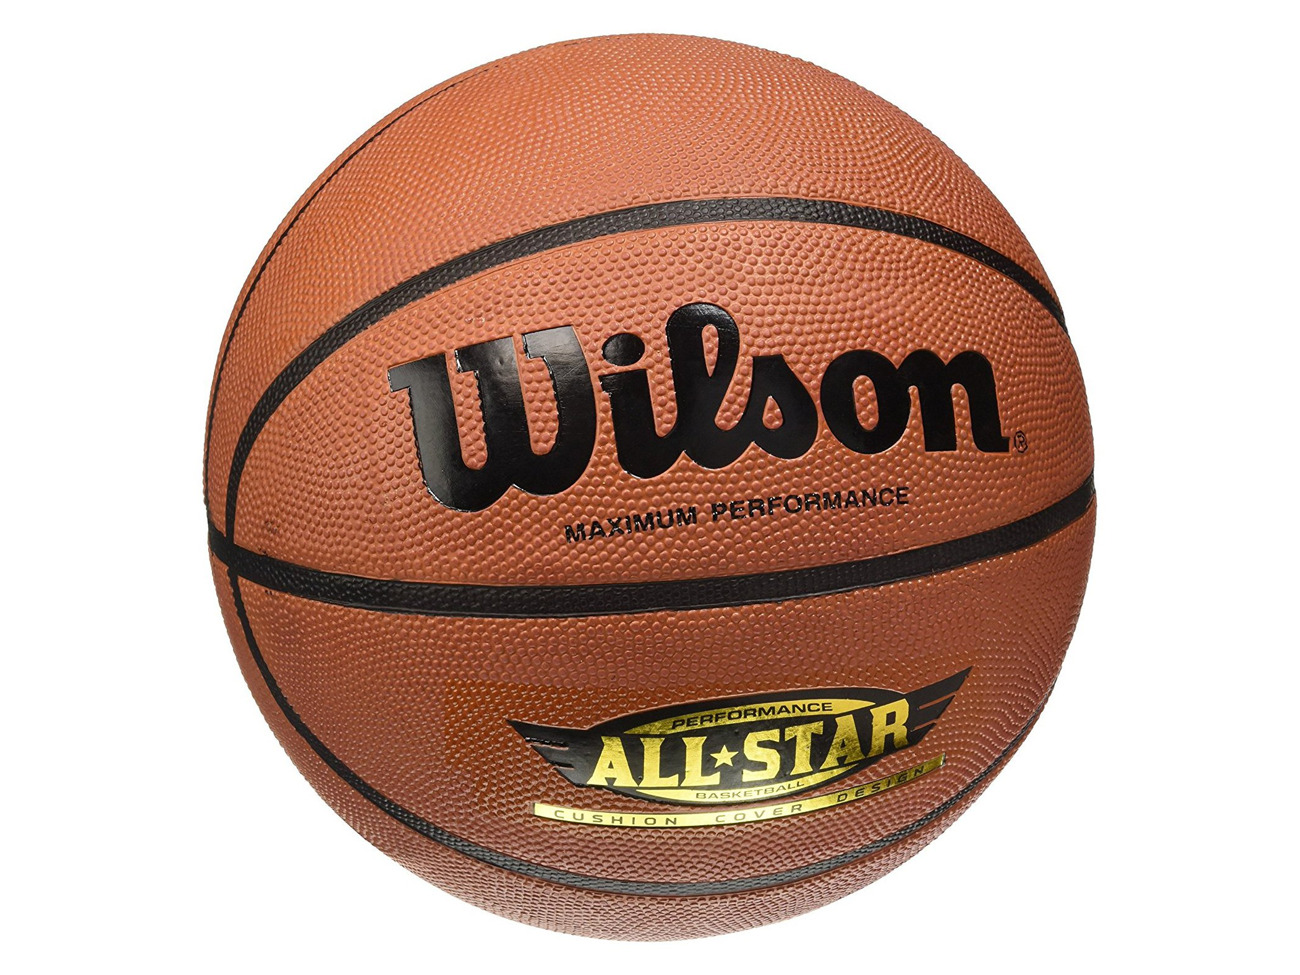 Asphalt Performance All Star Wilson Outdoor basketball Rough Surfaces Size 7 Brown Synthetic Floors 12 years and up WTB4040XB7